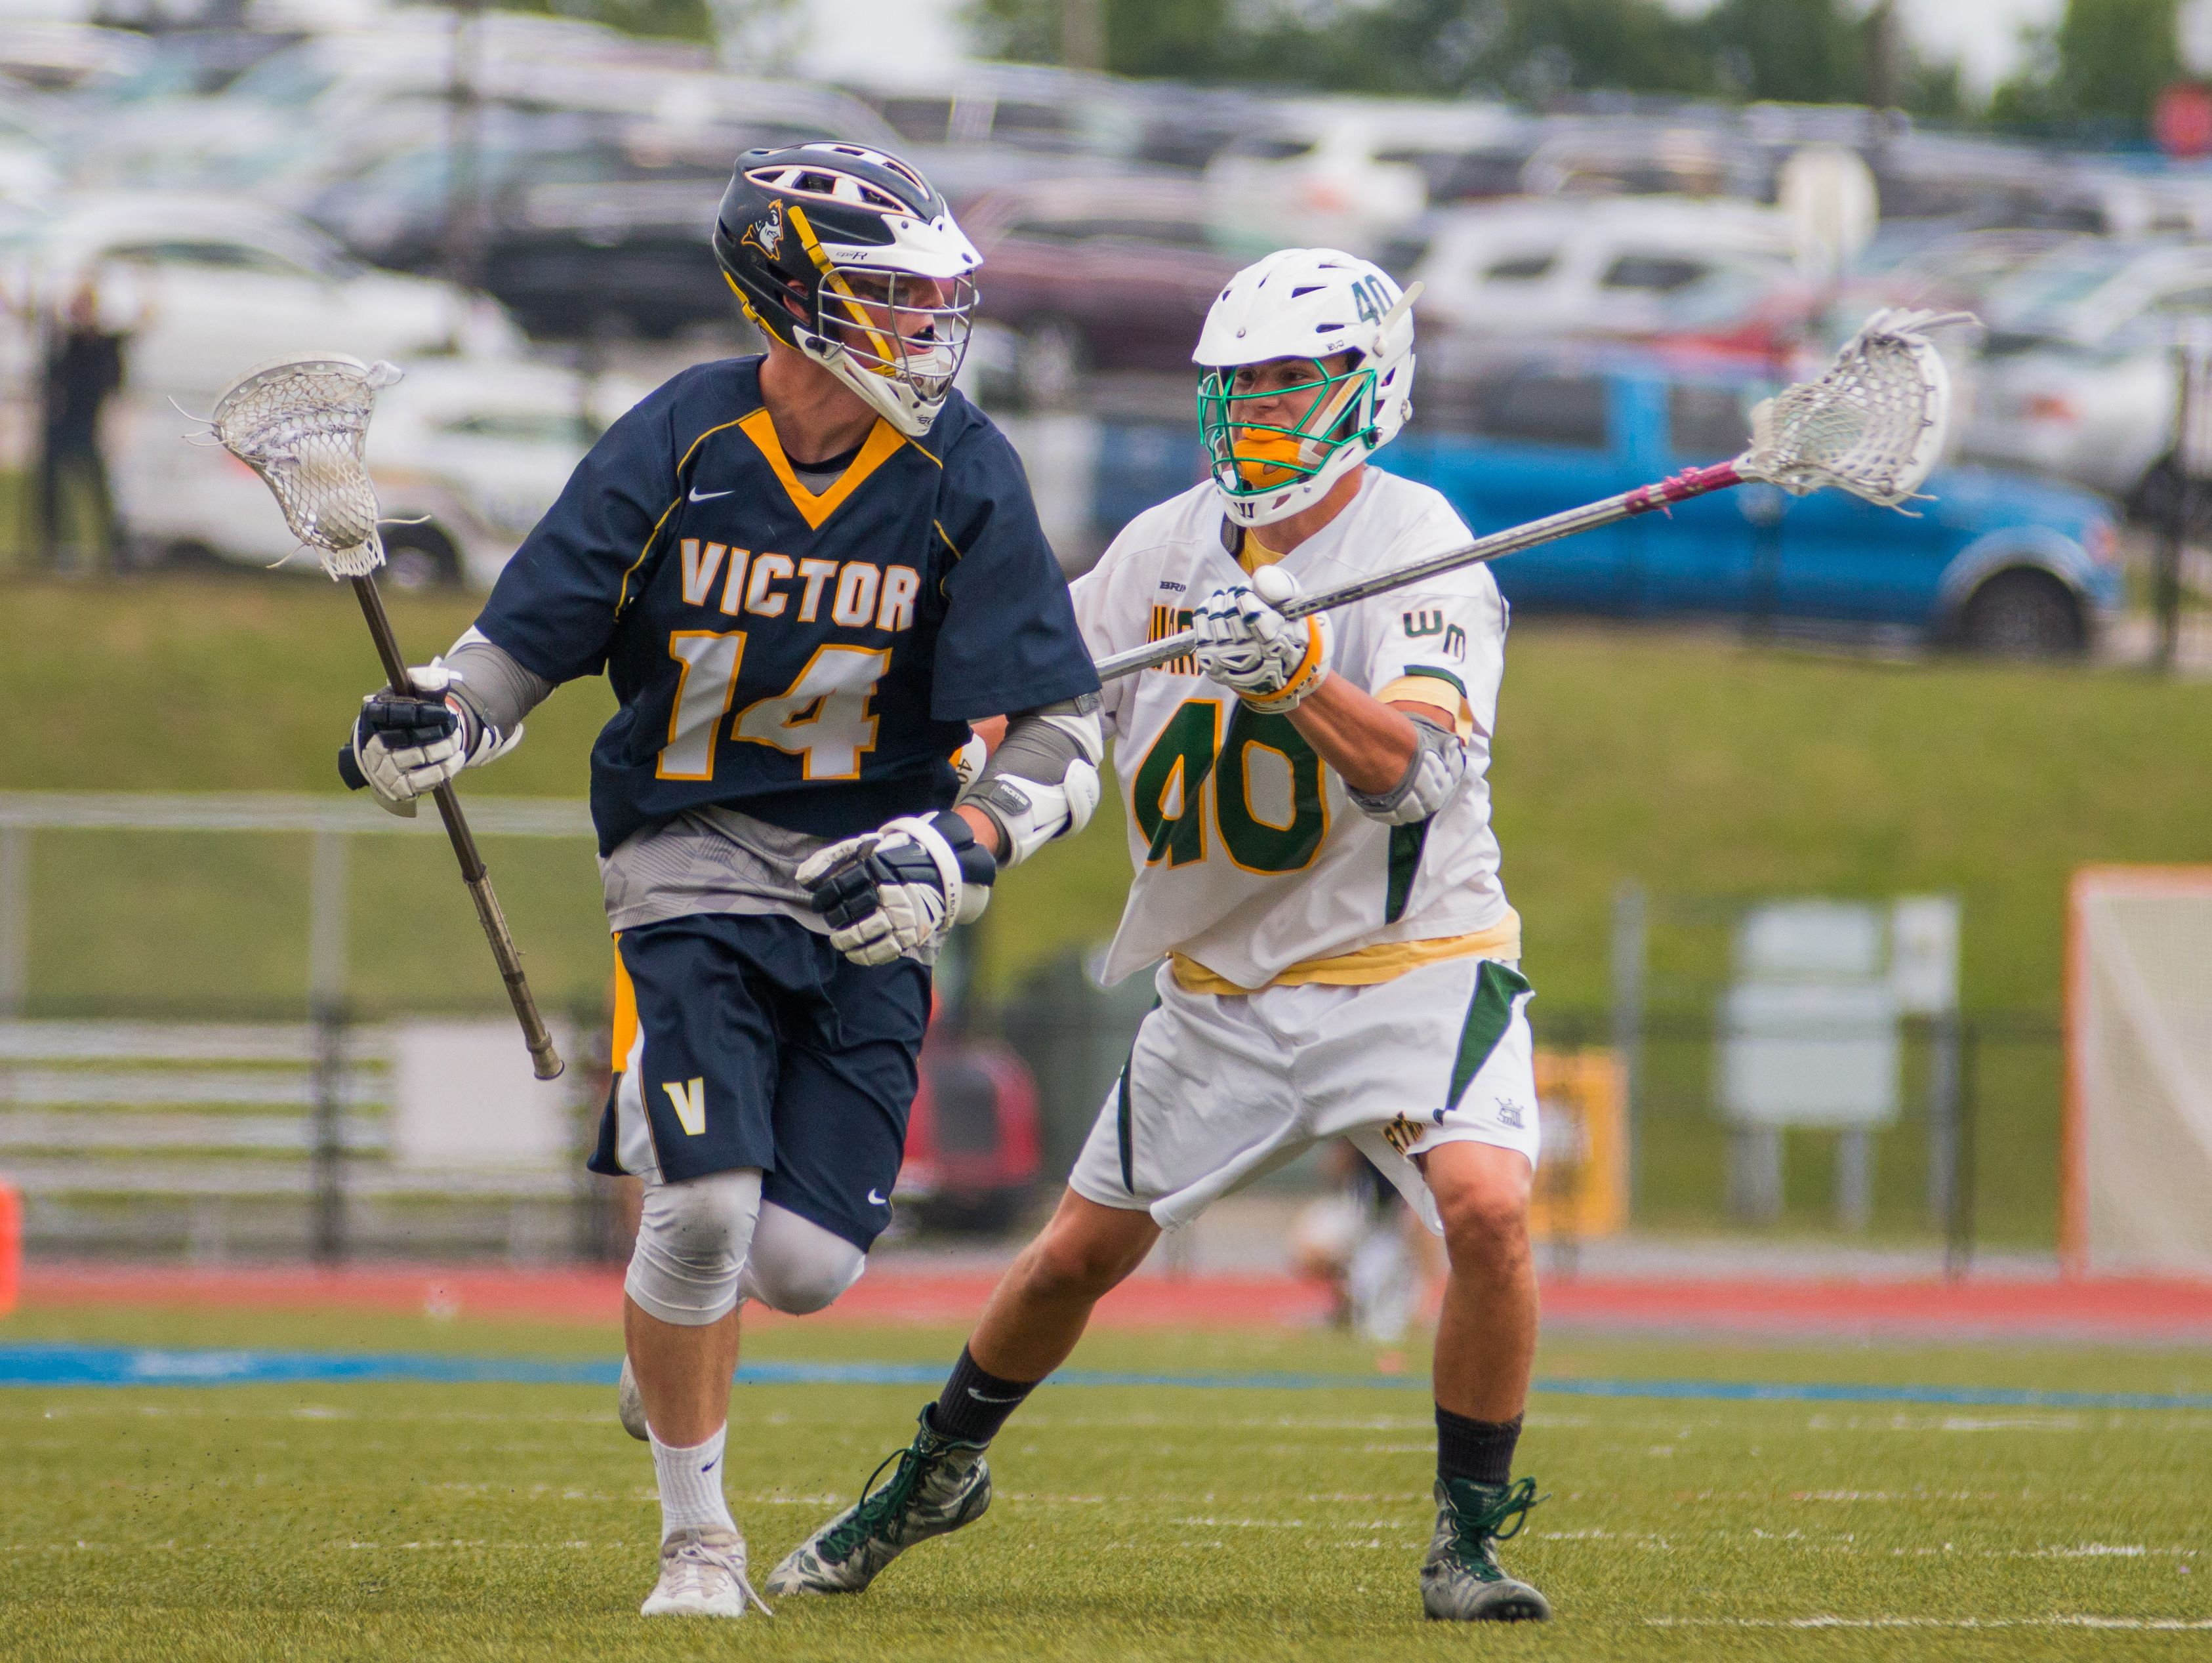 Victor senior Ryan Maloney led the Blue Devils with 108 points, 60 goals and 48 assists, each team-highs.